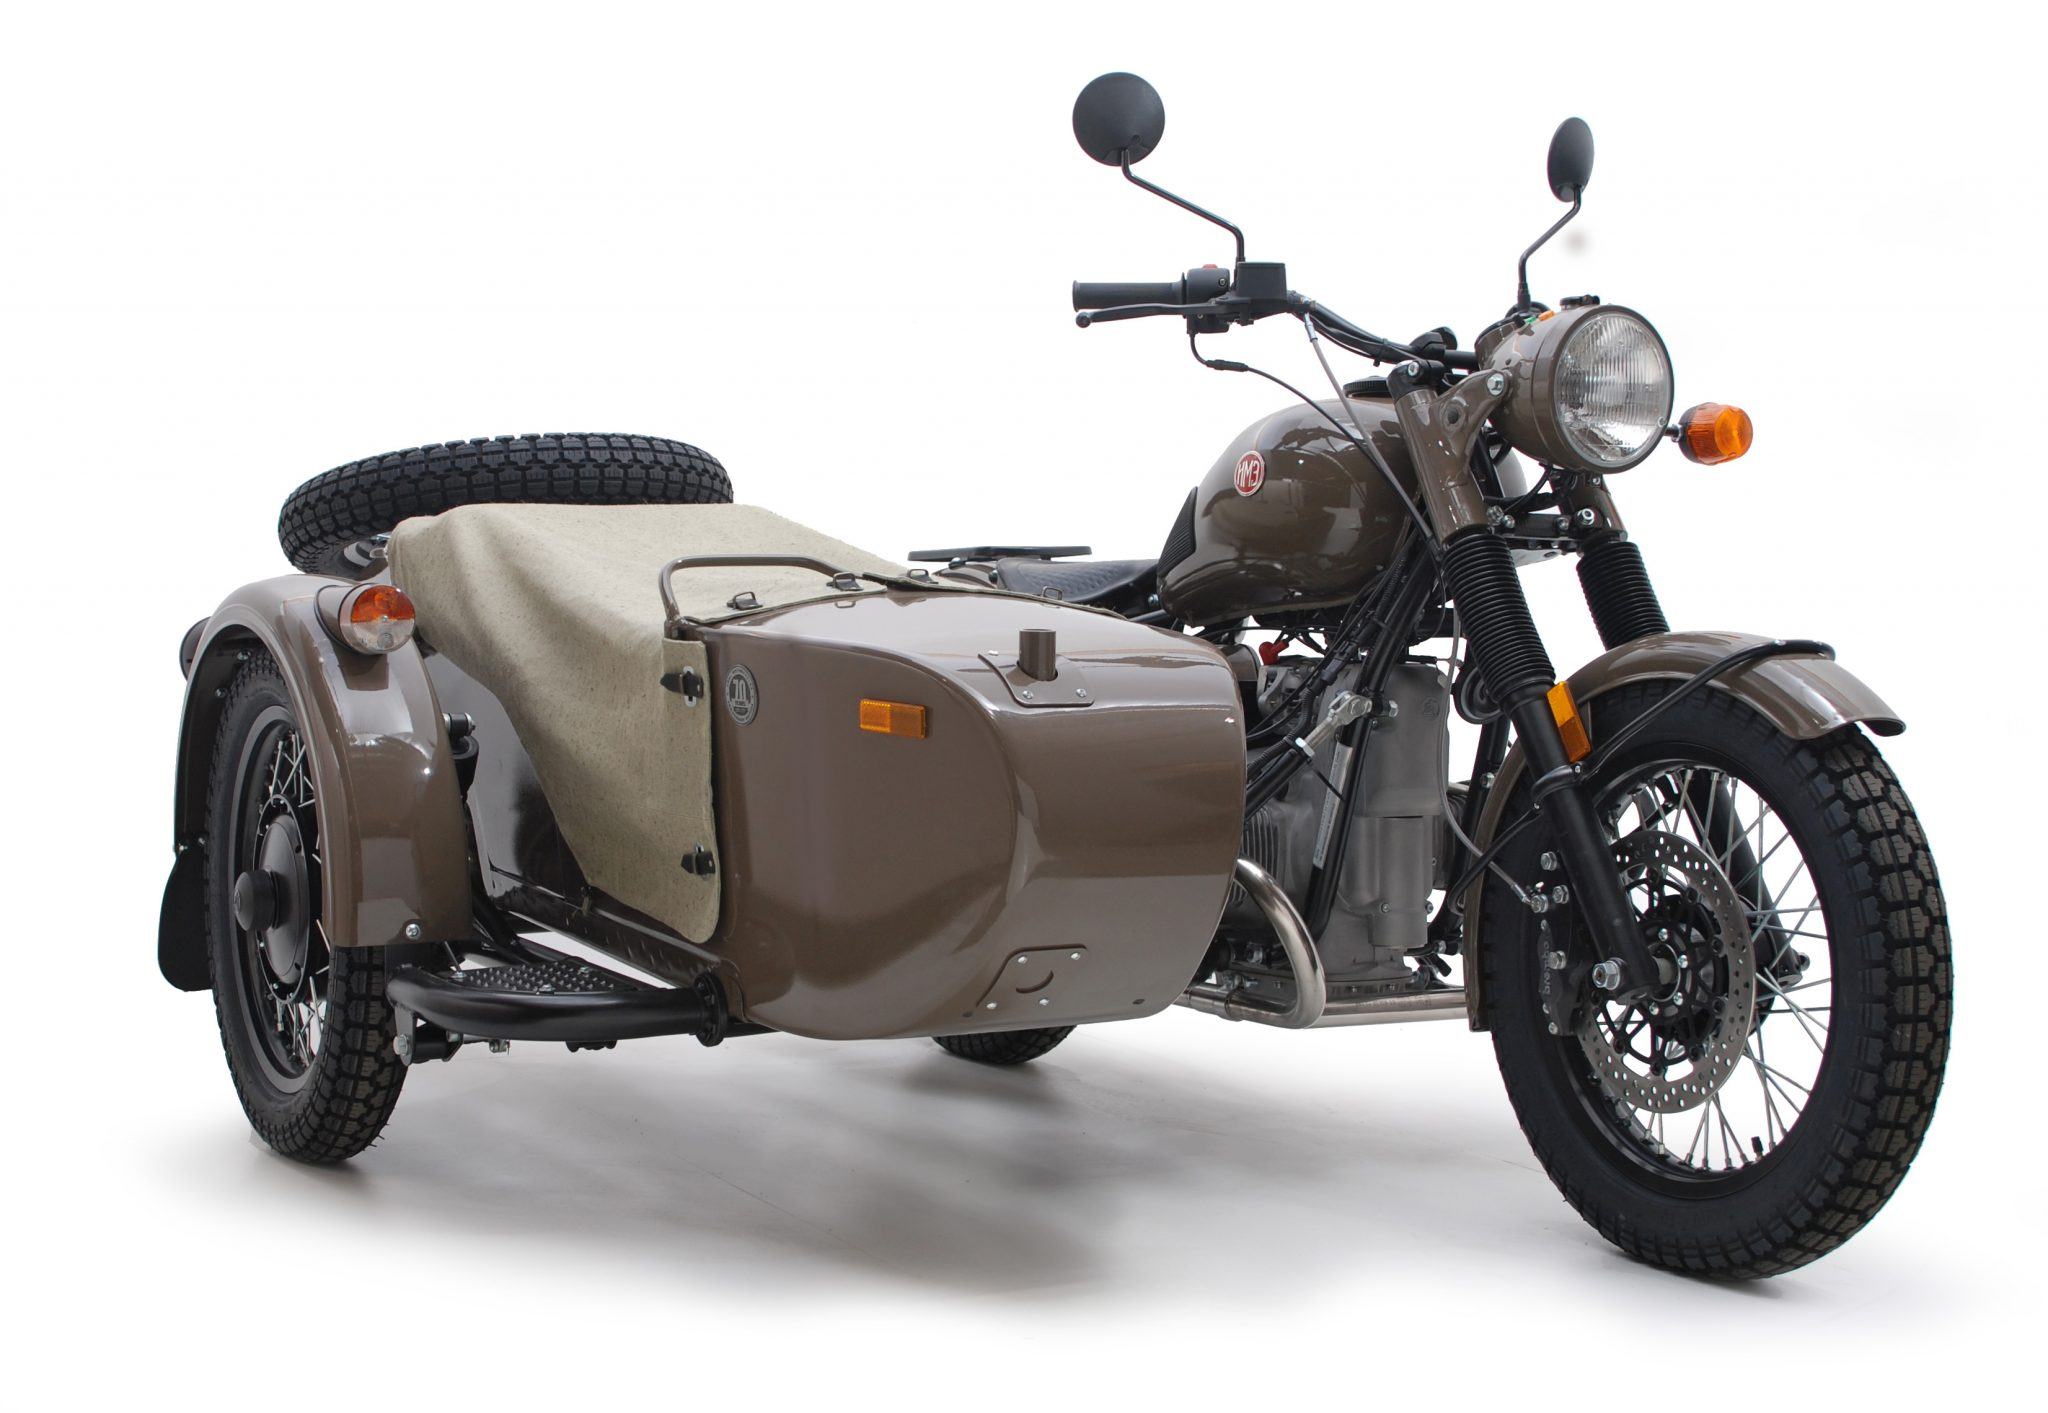 Ural sidecar) photo - 2